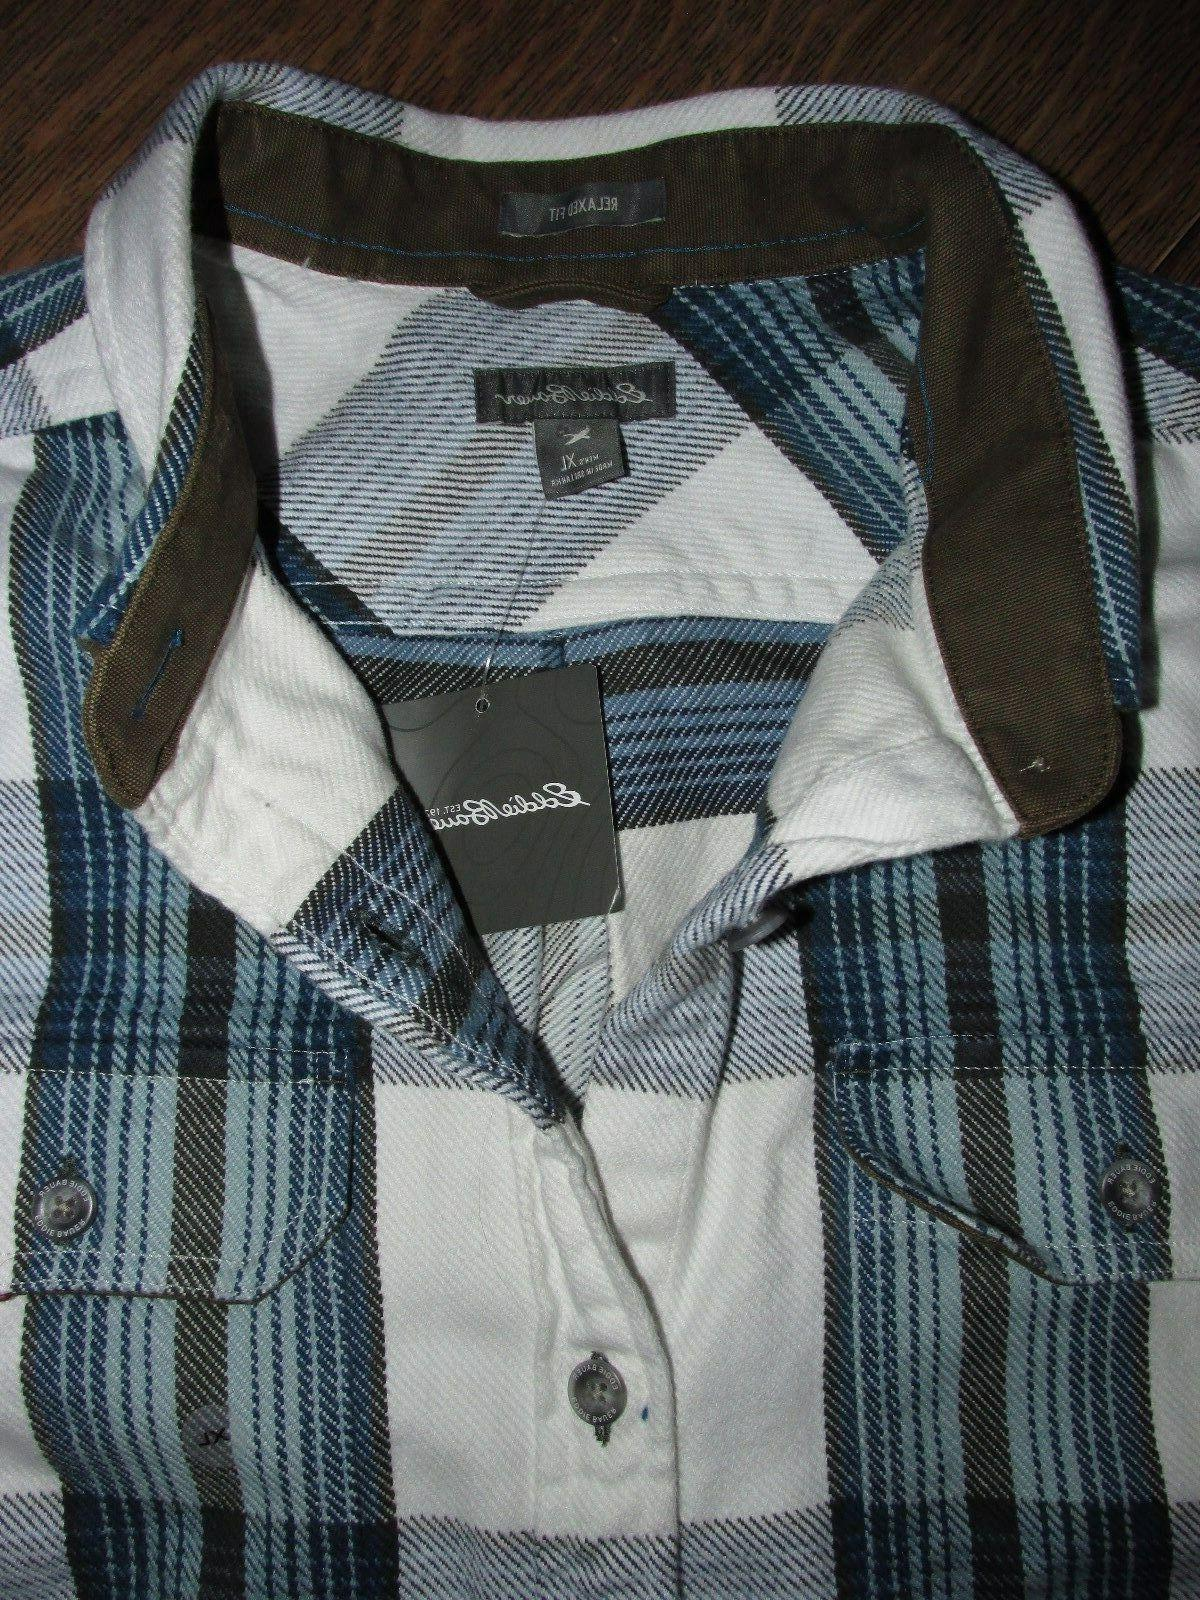 NEW NWT Flannel LT